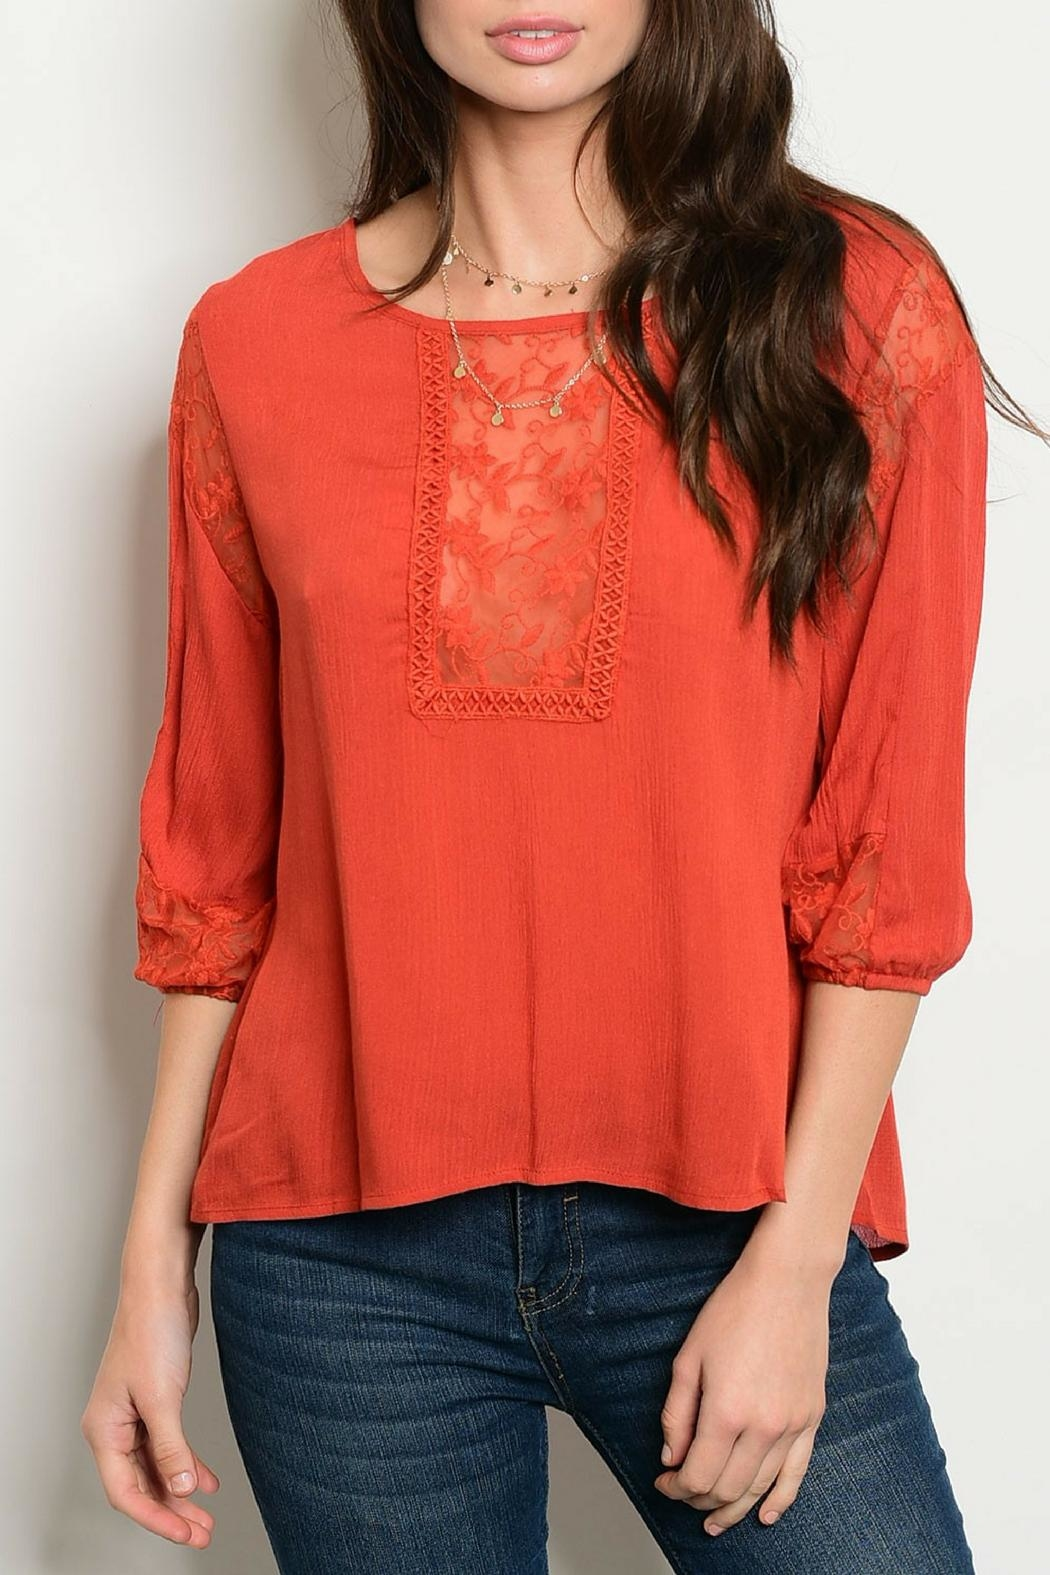 Chlah Rust Lace Top - Main Image